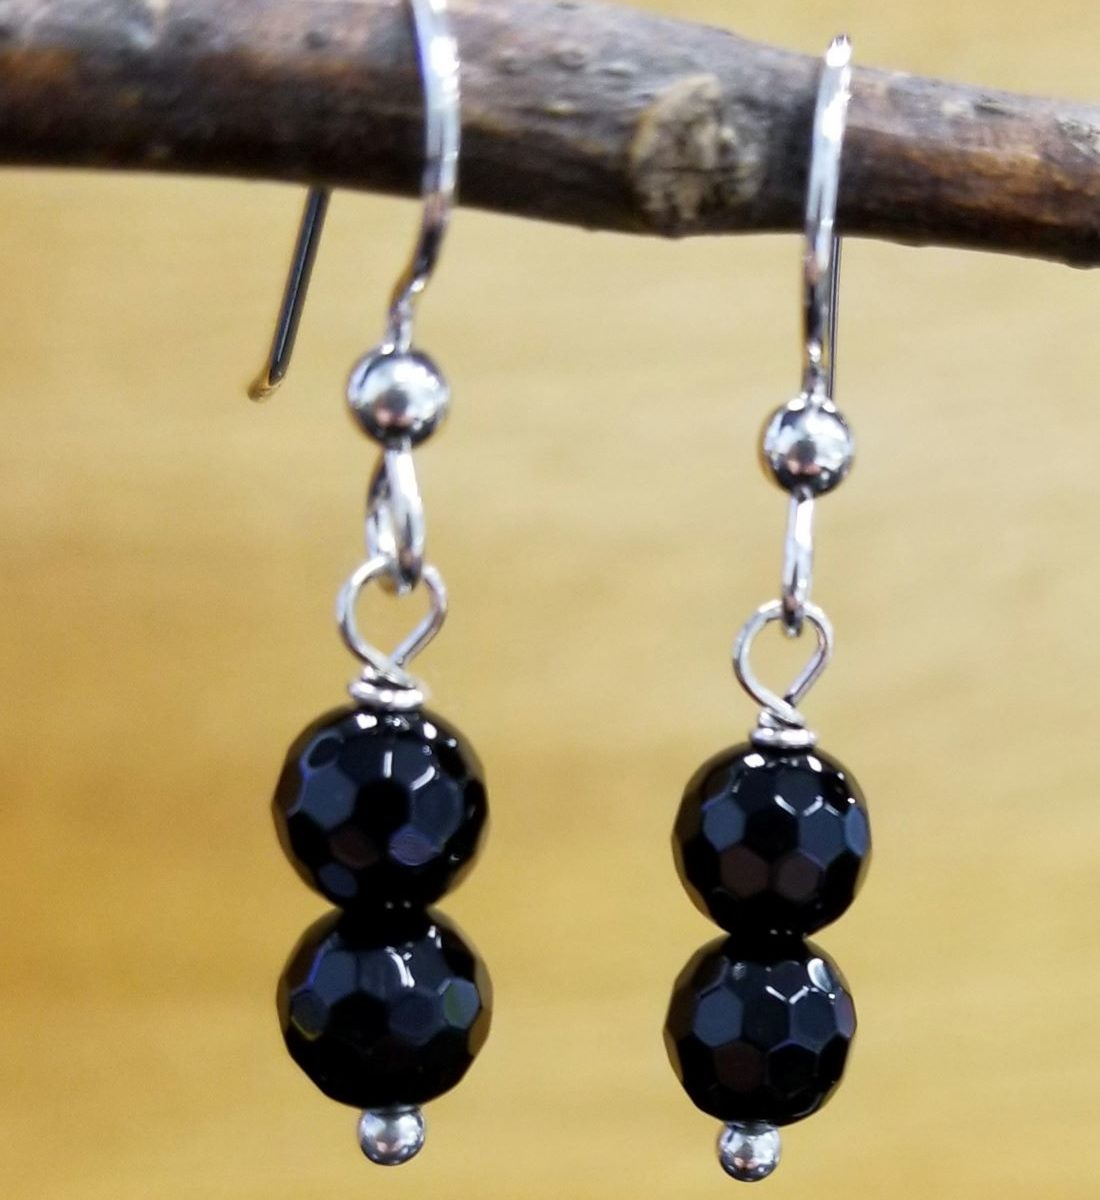 black onyx and sterling silver earrings with 2 beads per earring